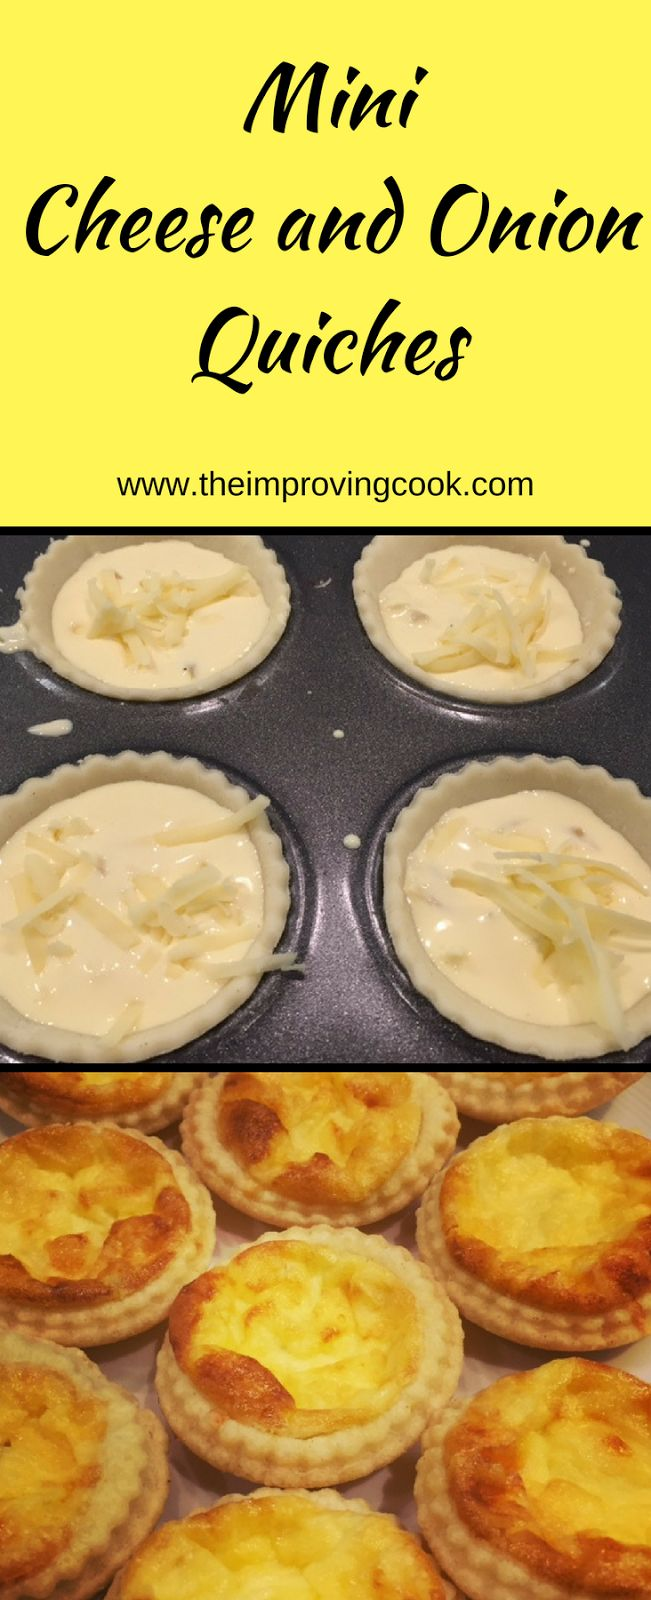 Mini Cheese And Onion Quiches French Tea PartiesAfternoon Menu IdeasAfternoon WeddingAfternoon